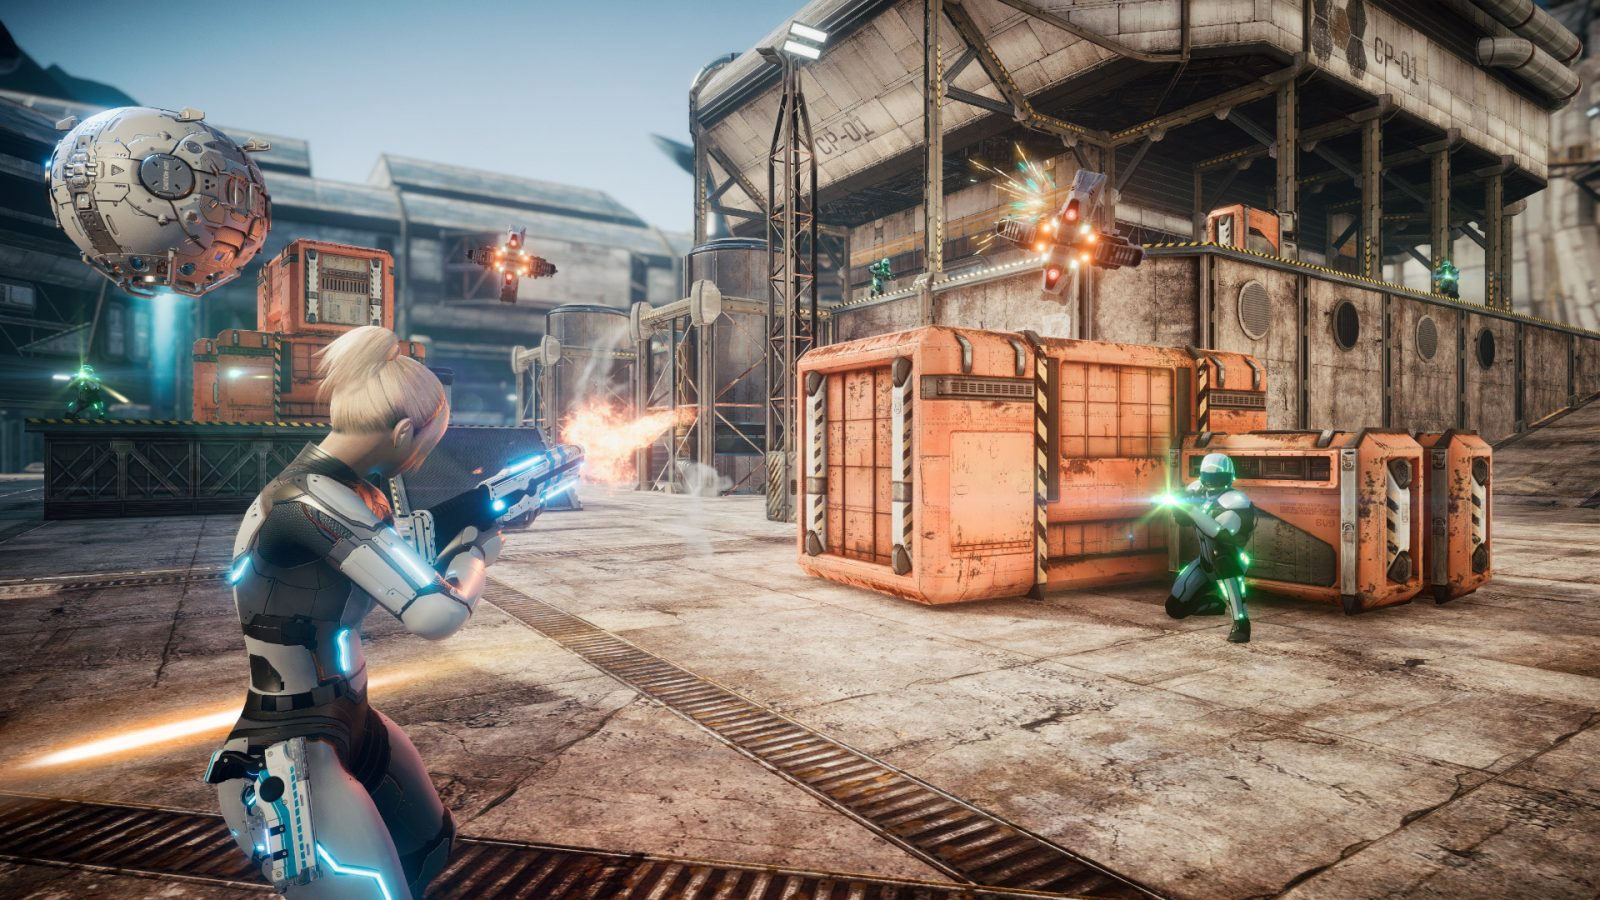 New Trailer for Shooter RPG Everreach: Project Eden